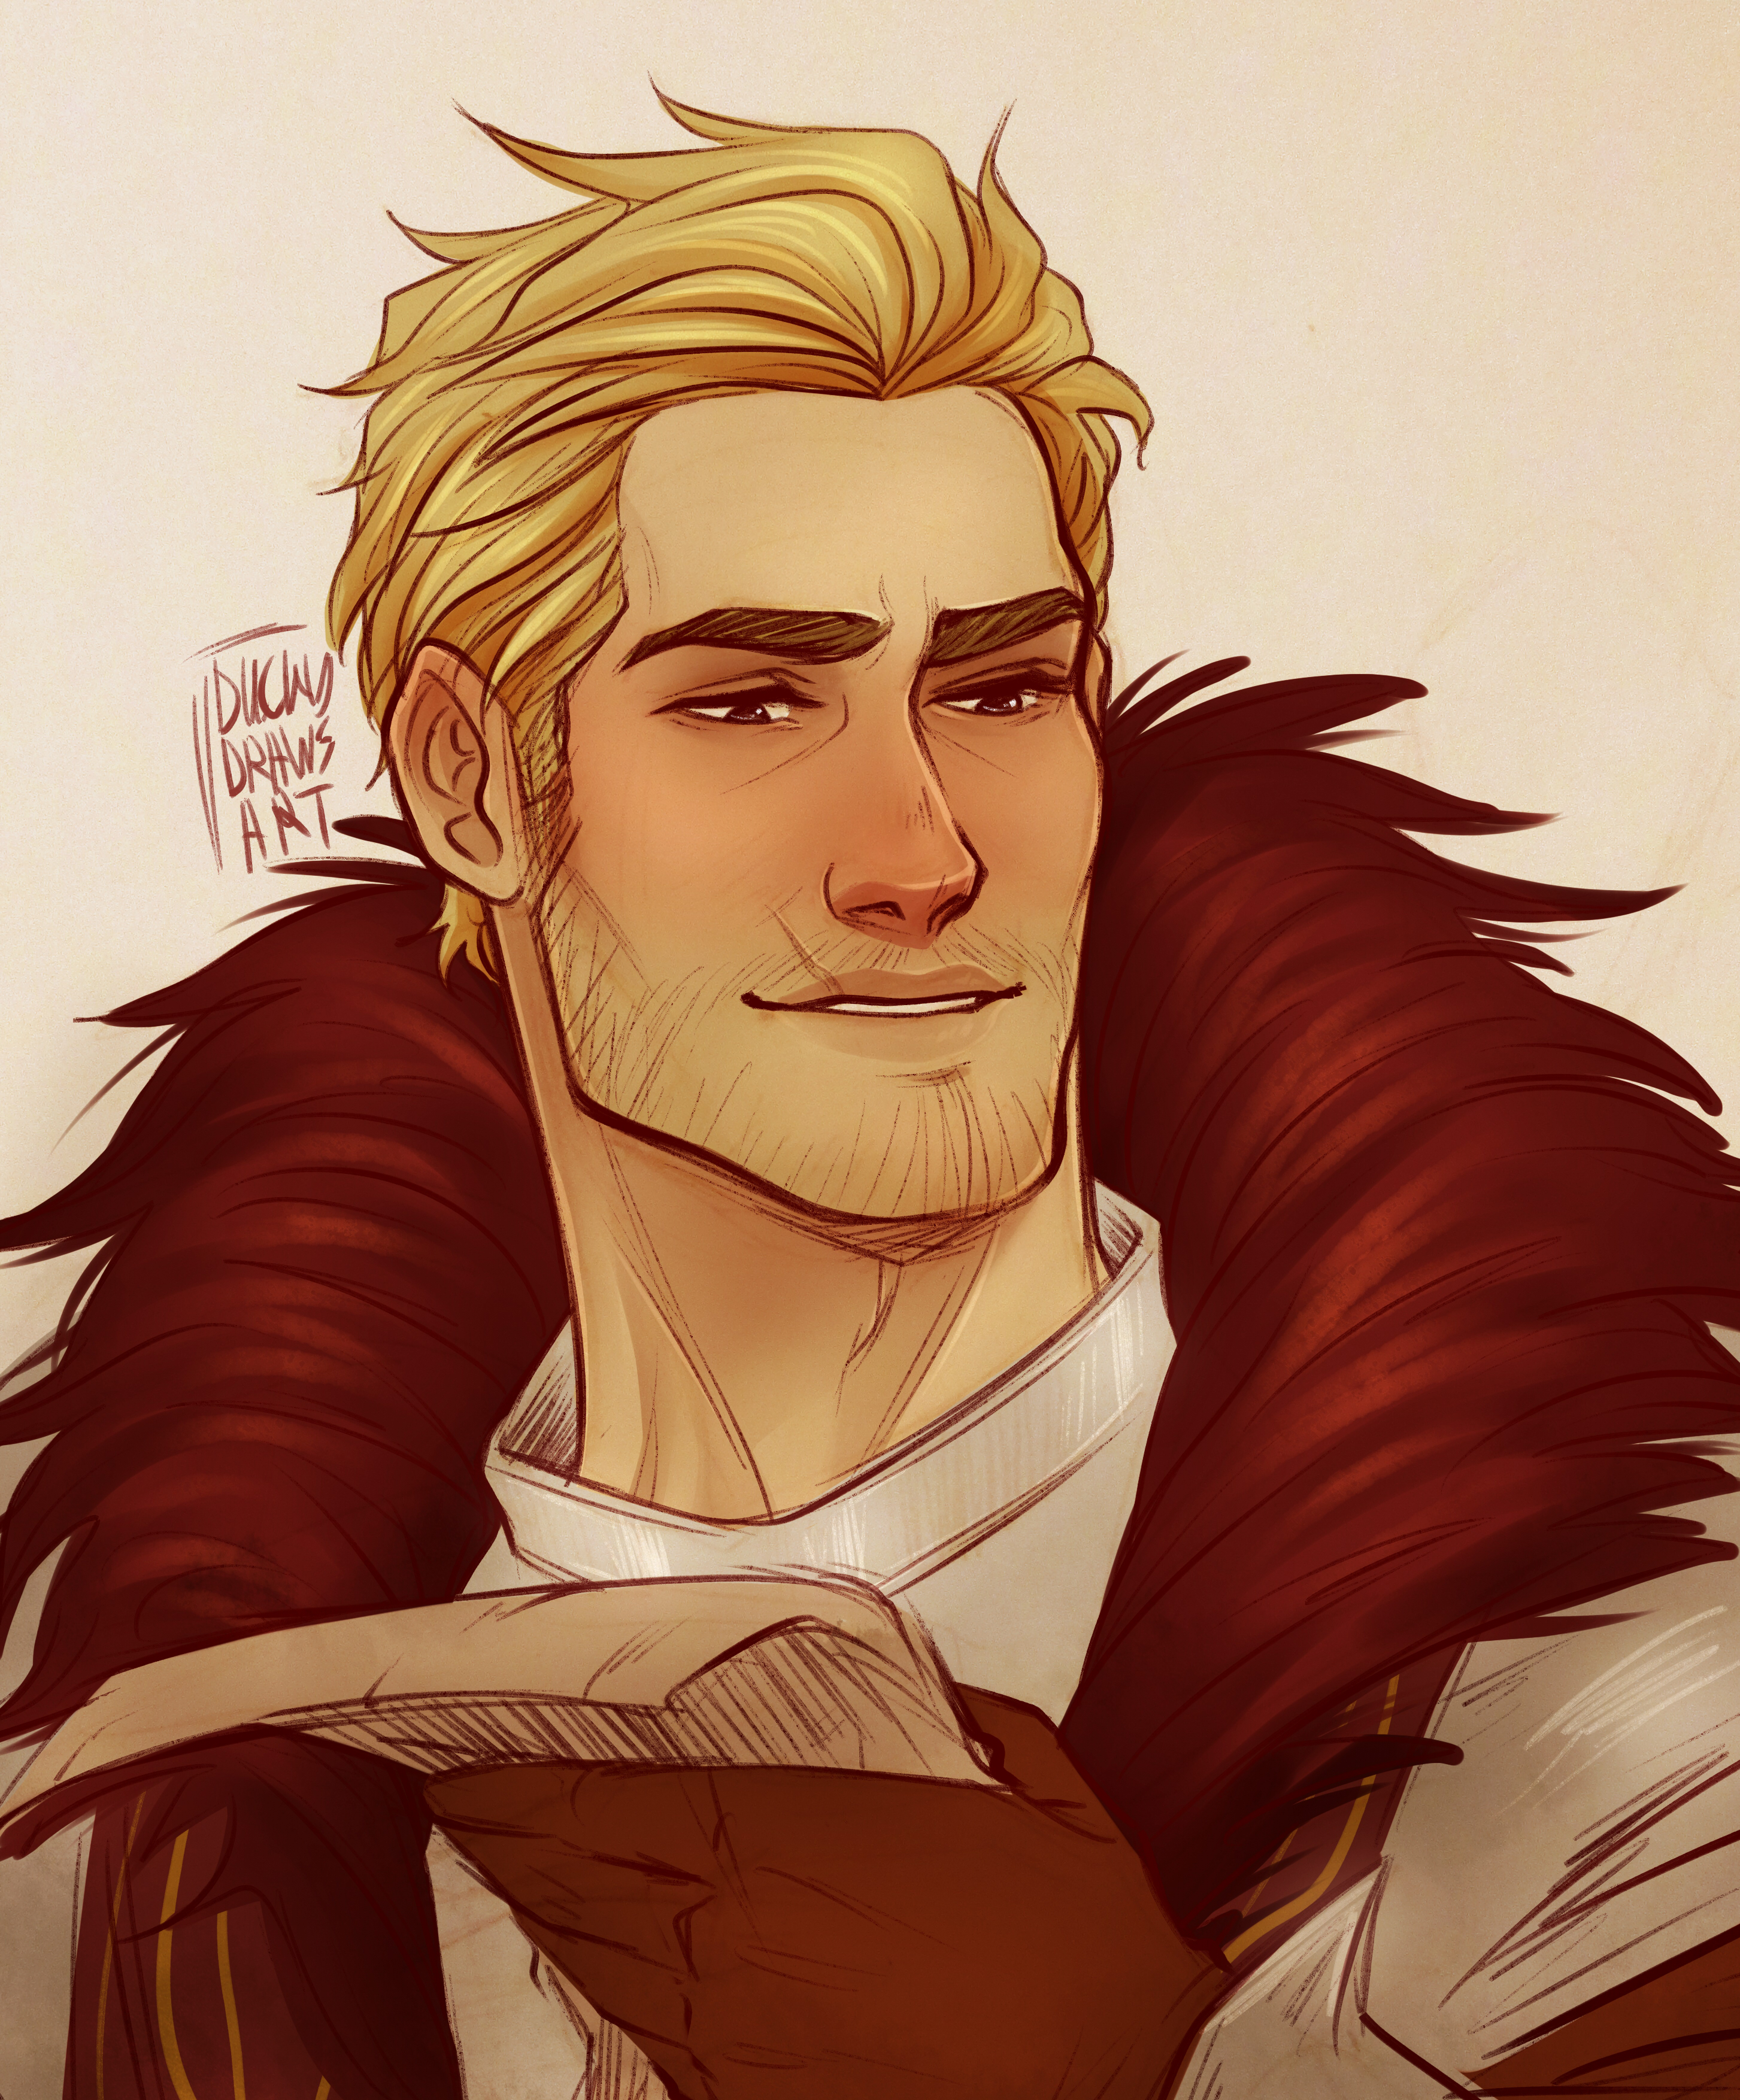 Cullen Dragon Age Inquisition Image 2386410 Zerochan Anime Image Board